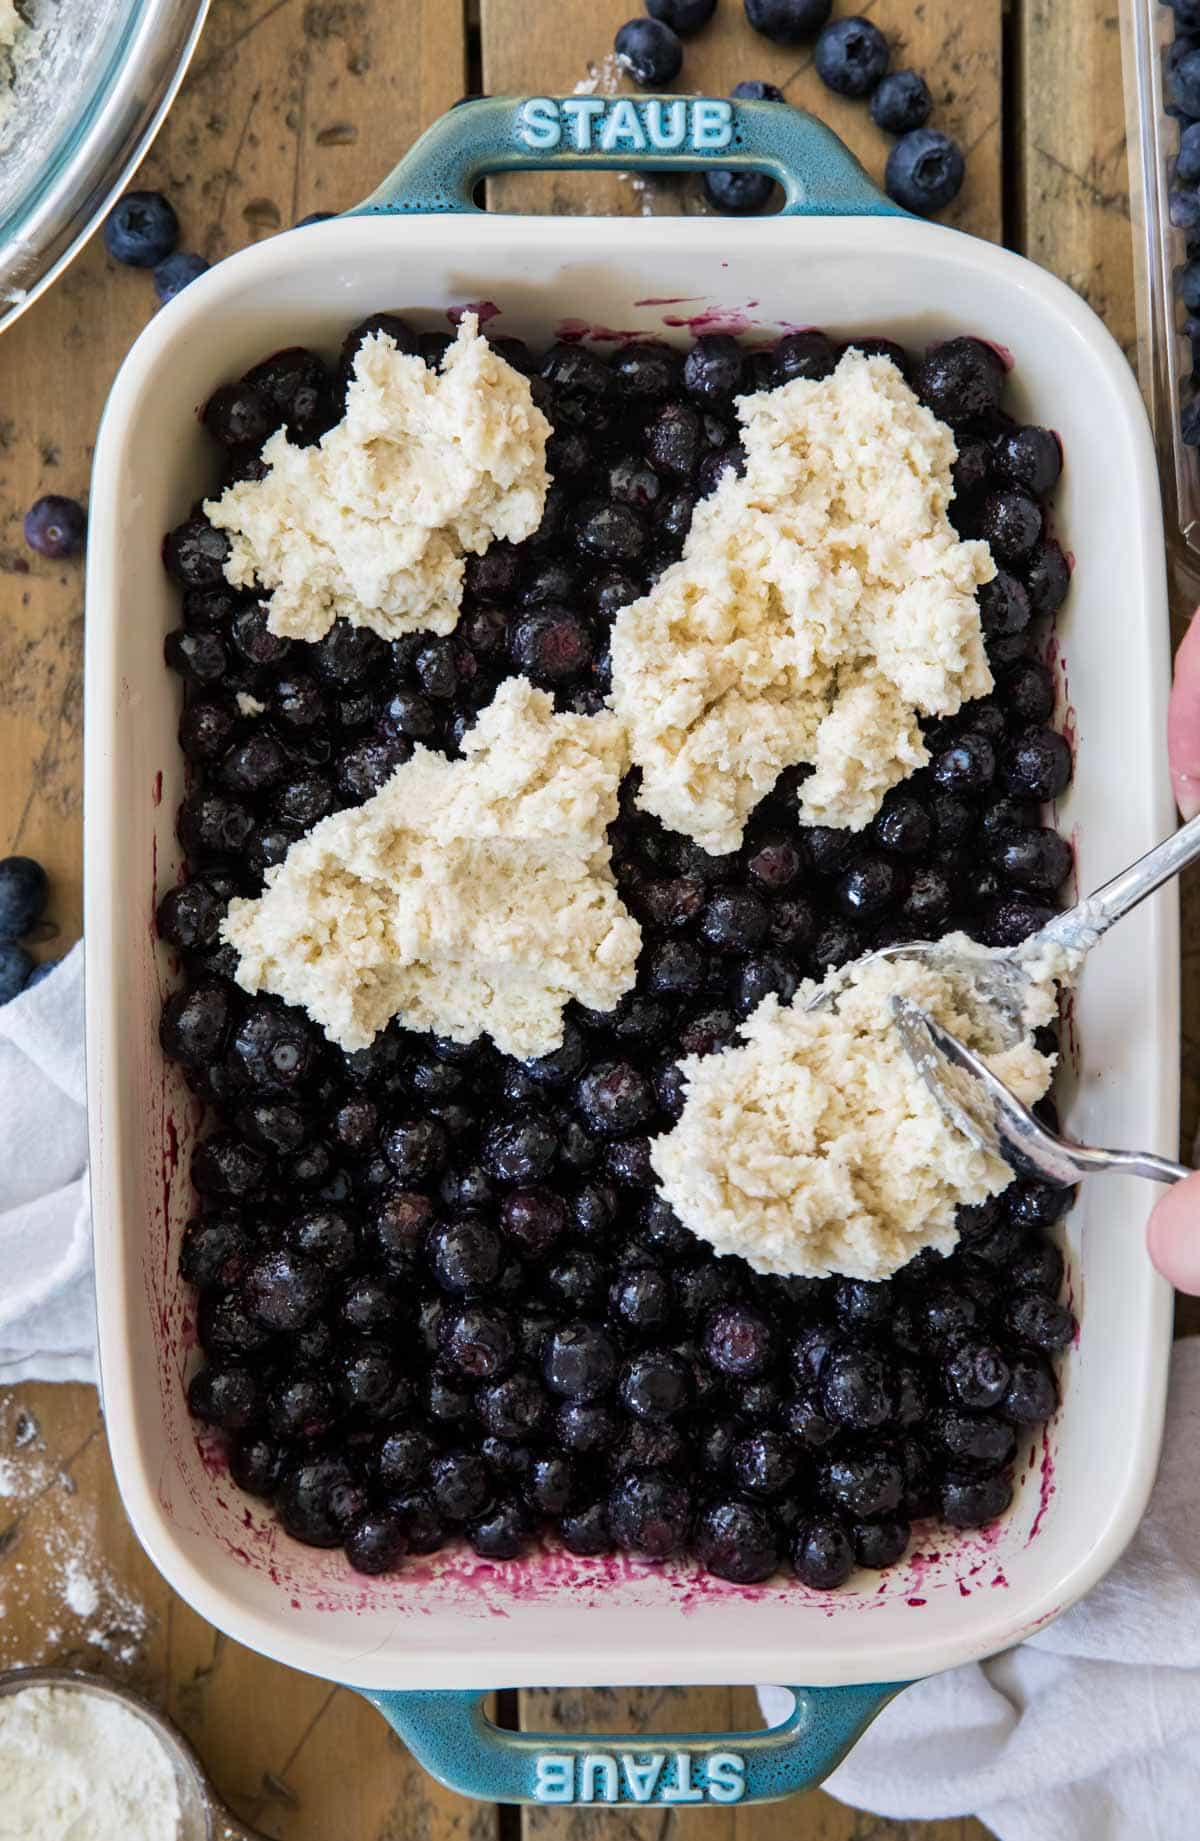 spooning cobbler batter over blueberries